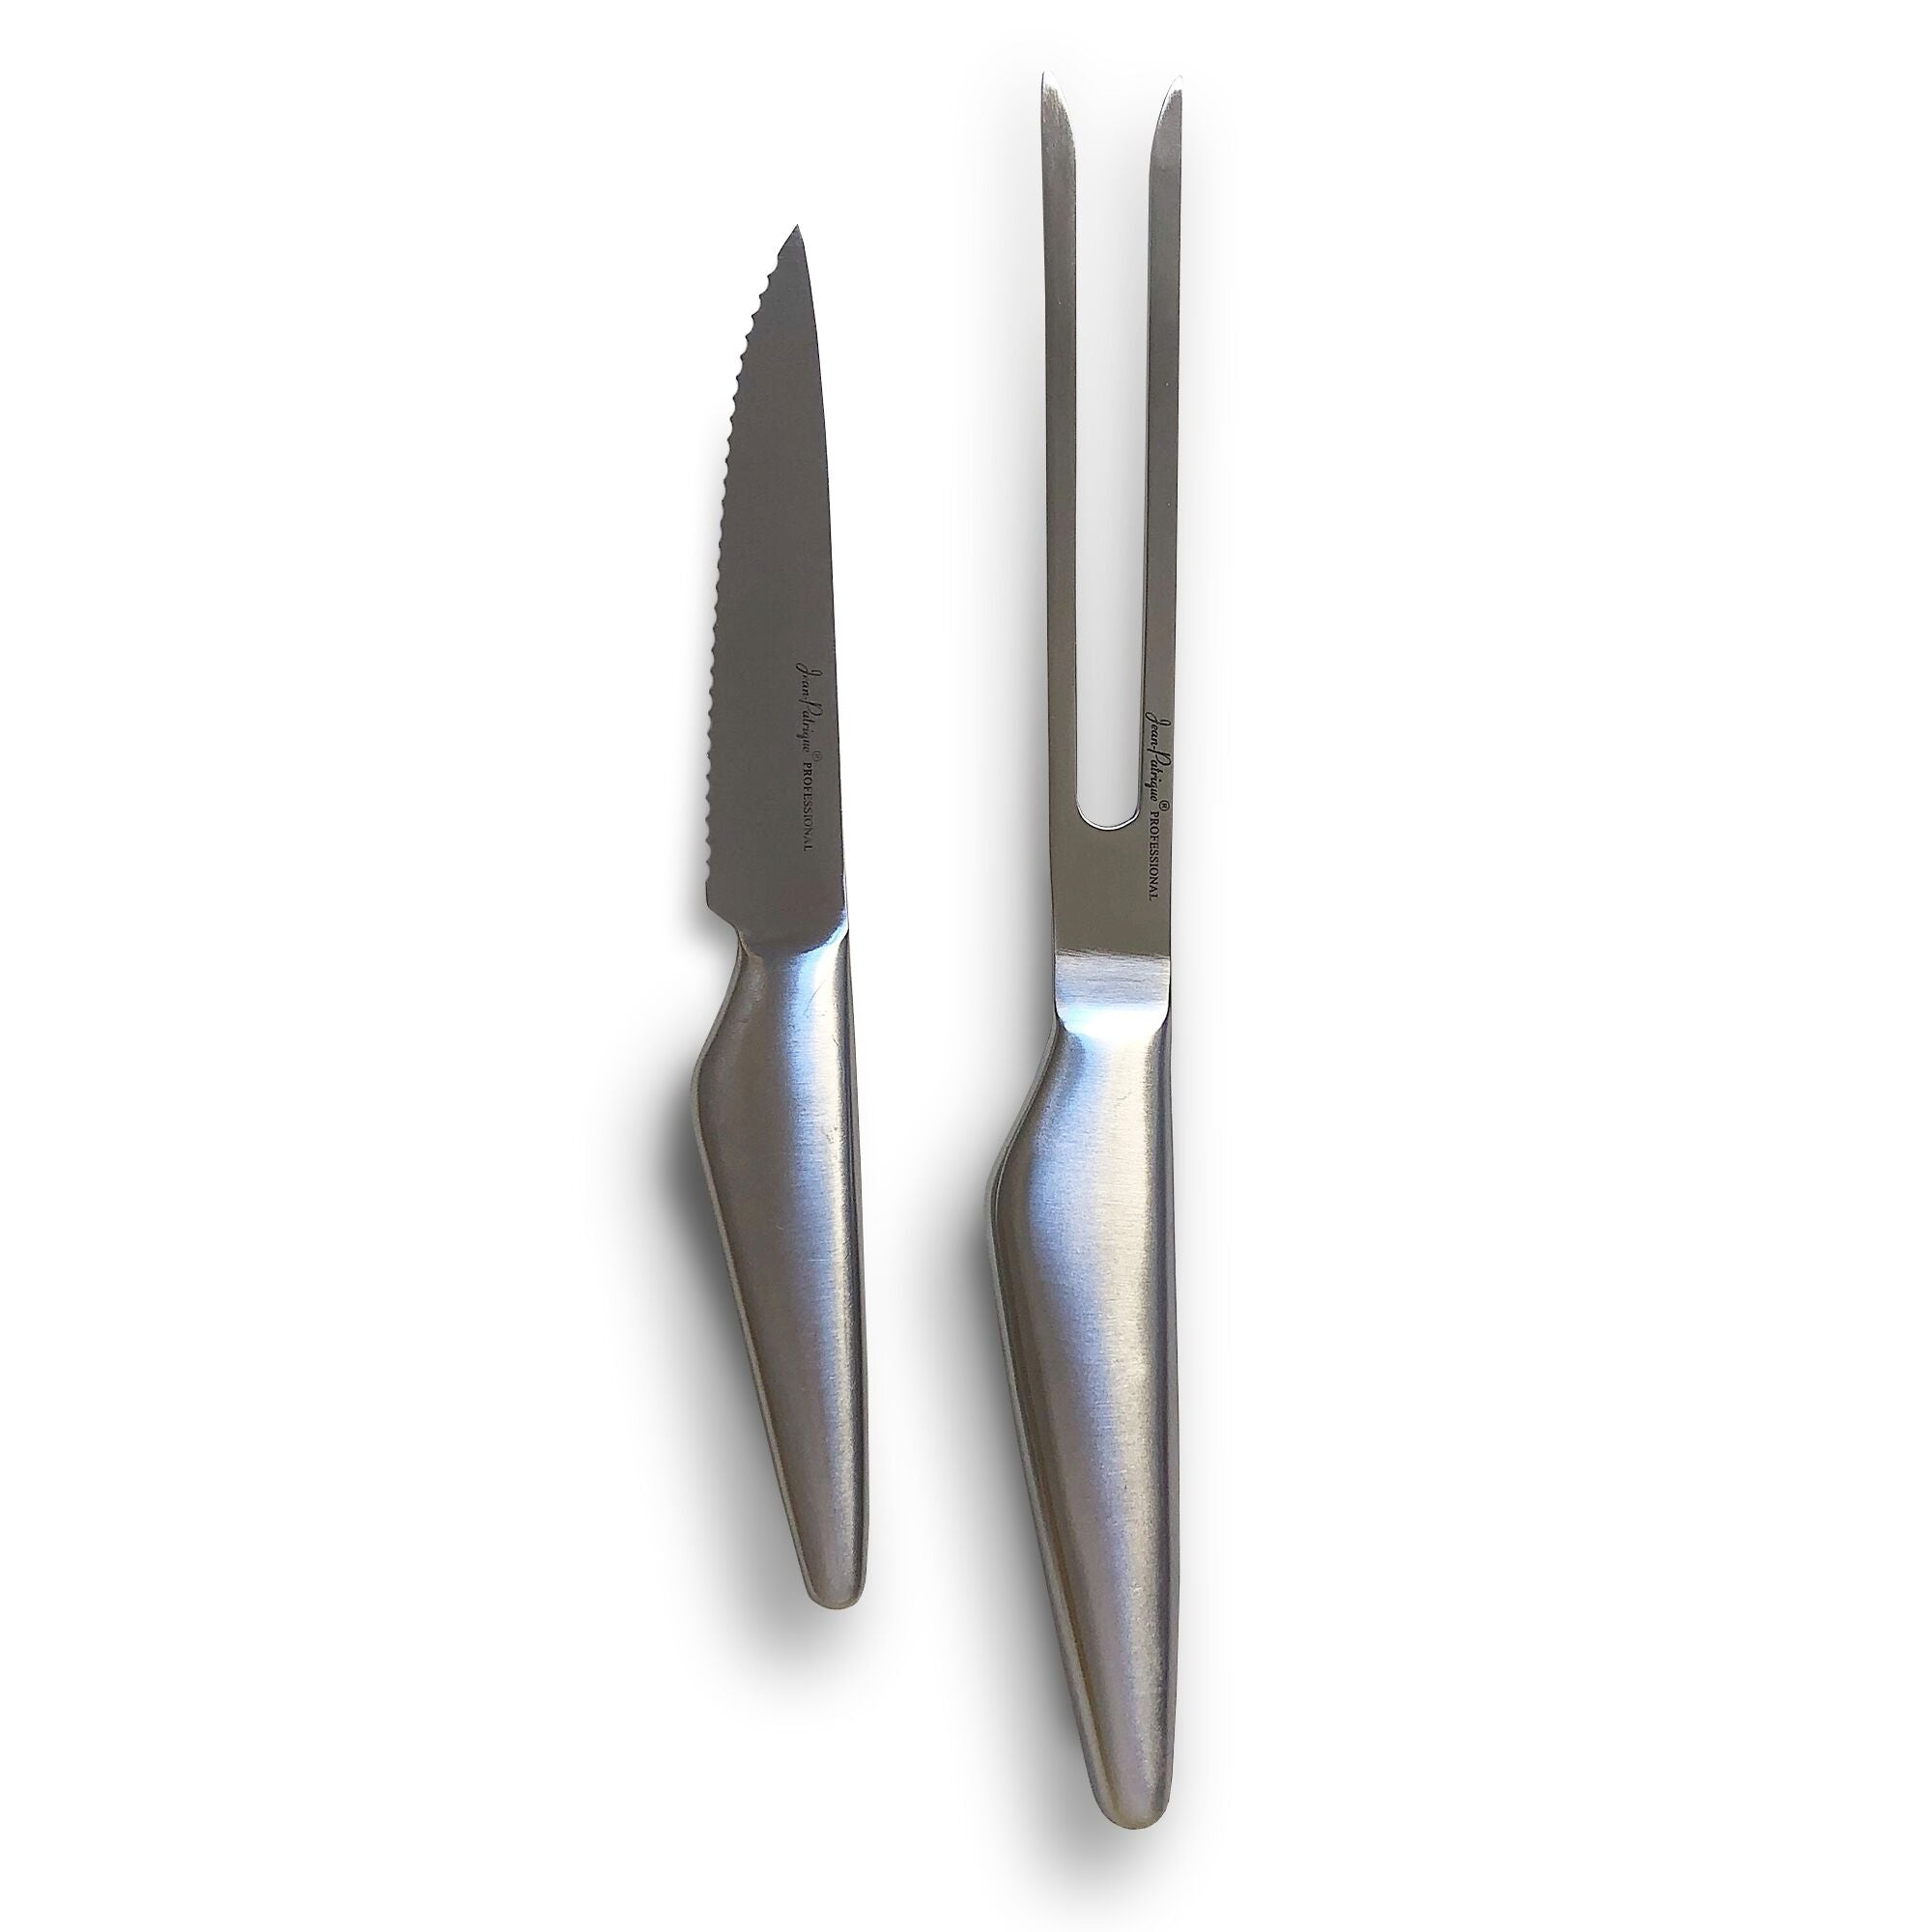 Chopaholic Carving Knife and Fork Set